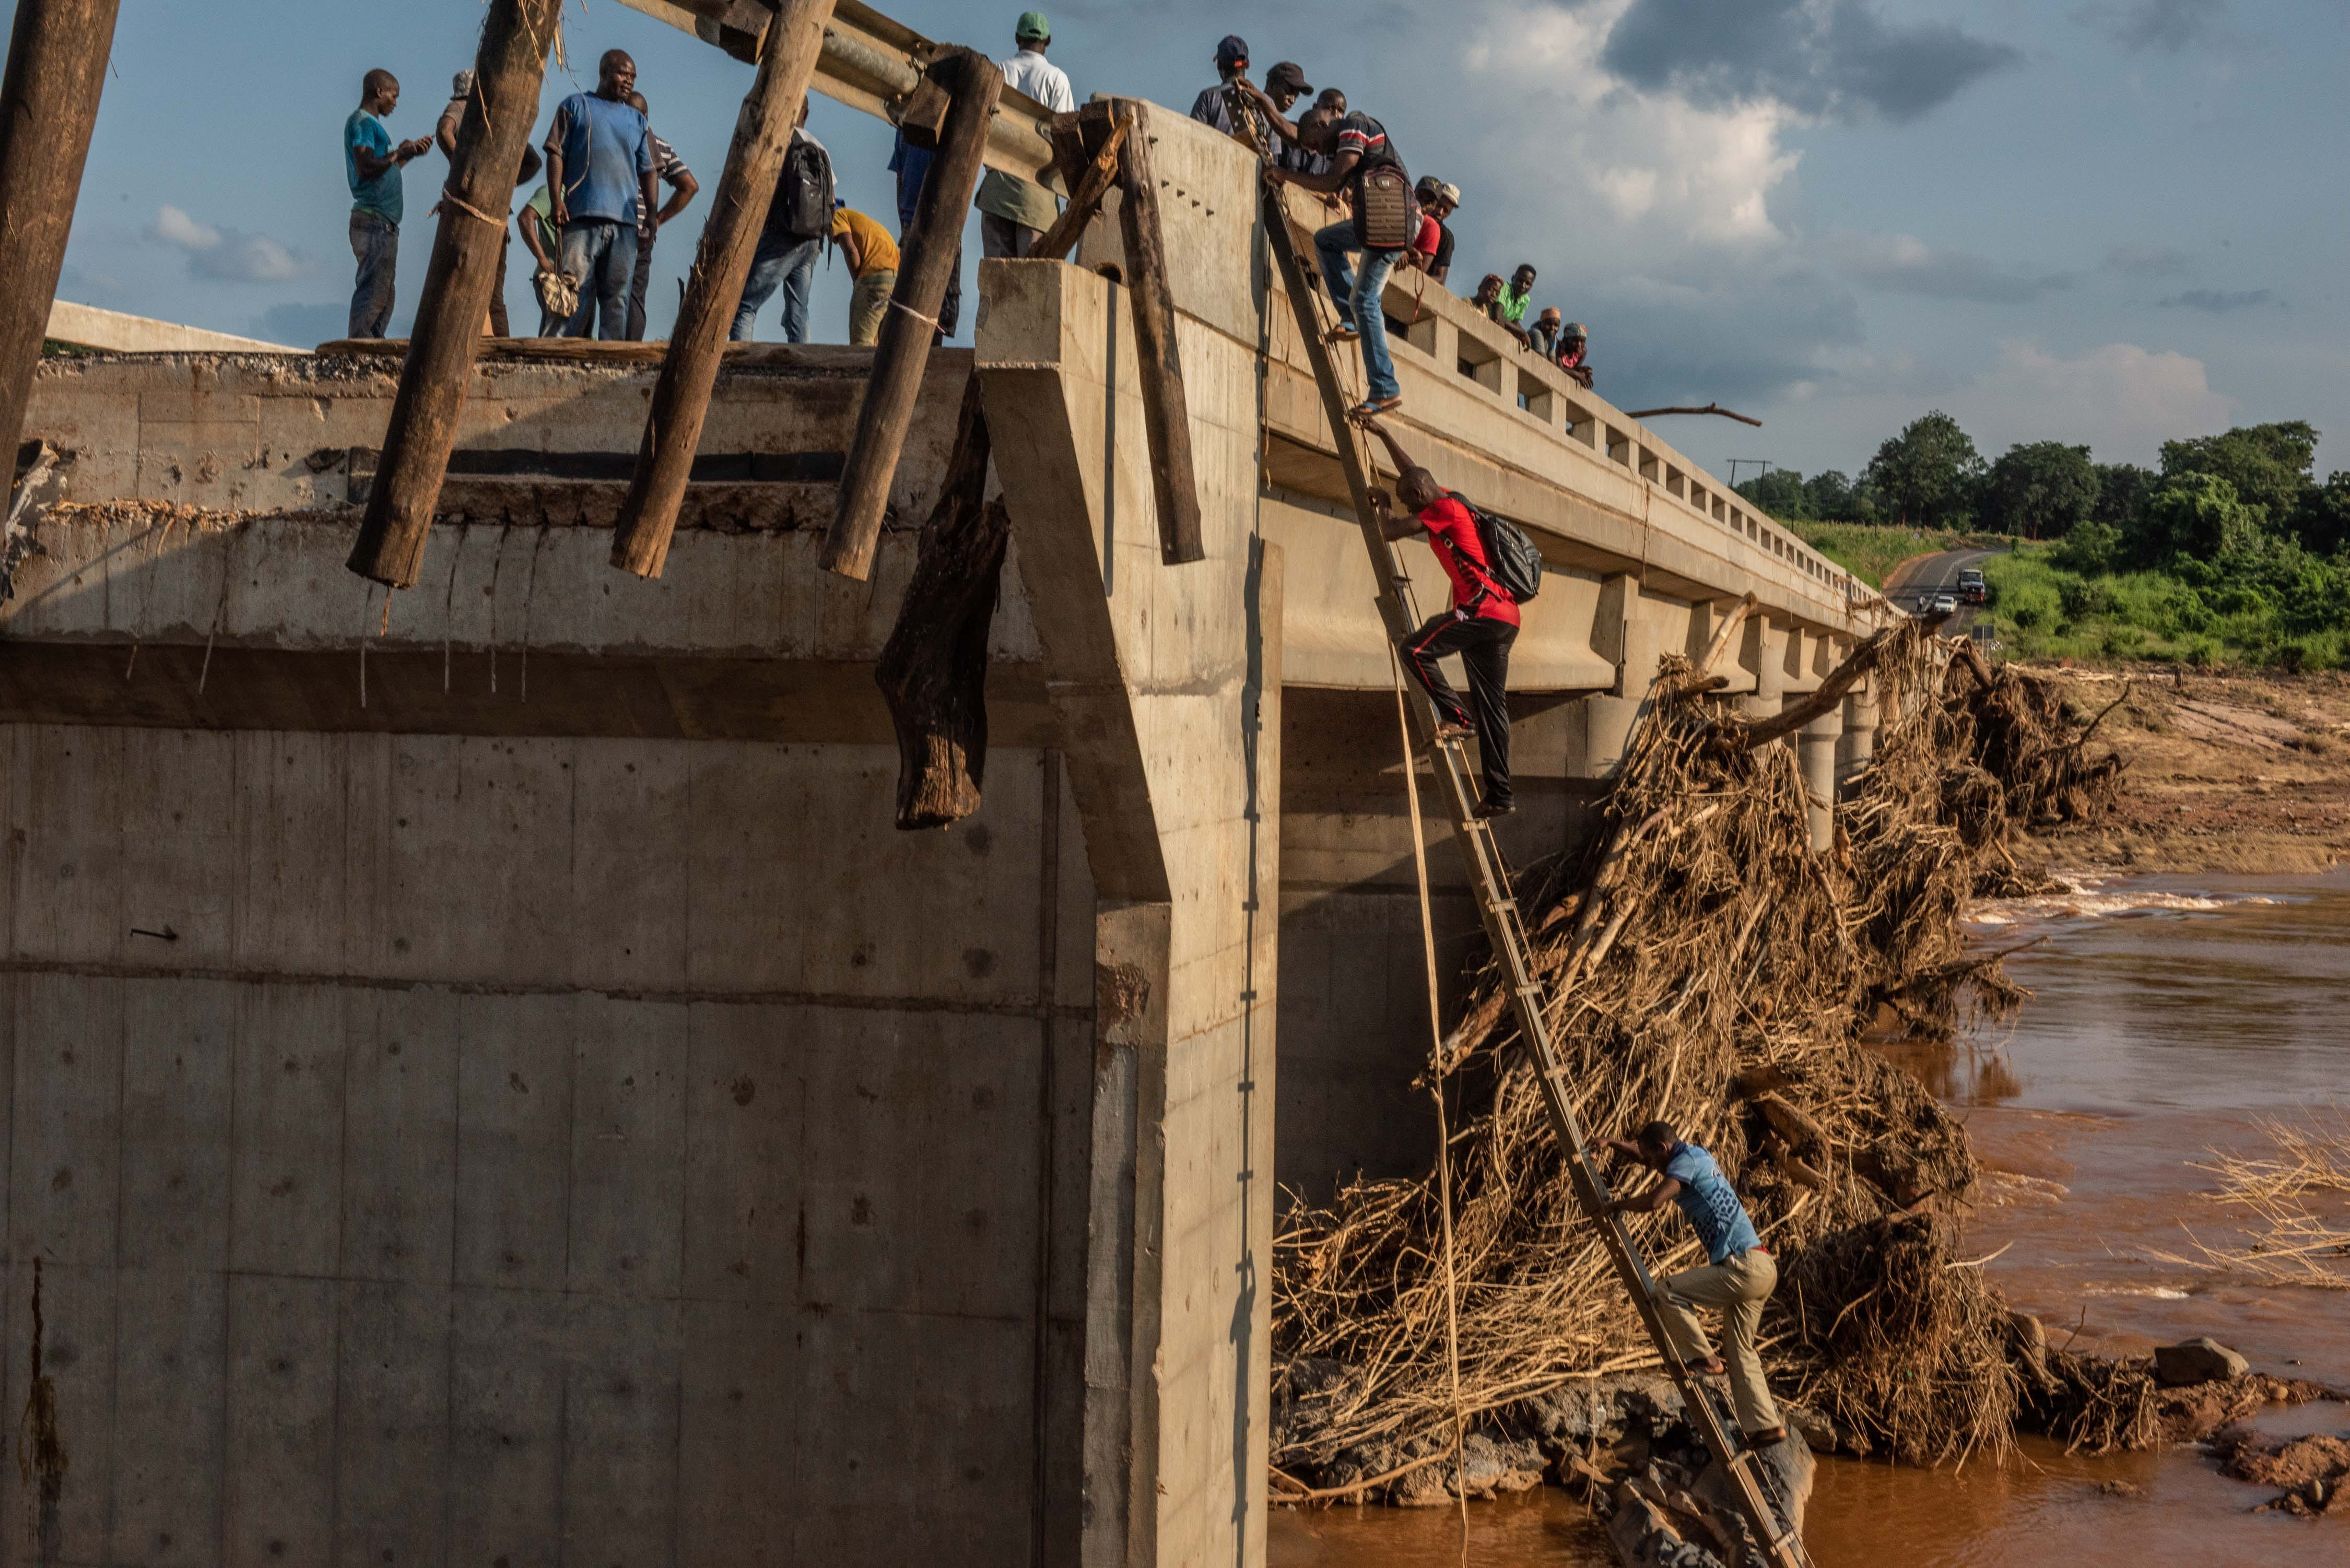 People climb to the top of a broken bridge, damaged during Cyclone Idai, across the Lucite River on March 26, 2019, outside of Magaro, Mozambique. The storm caused the river to overflow flooding nearby villages. At least 156 bodies have been found in the surrounding area, with witnesses recounting seeing bodies of humans and animals flowing down the river.